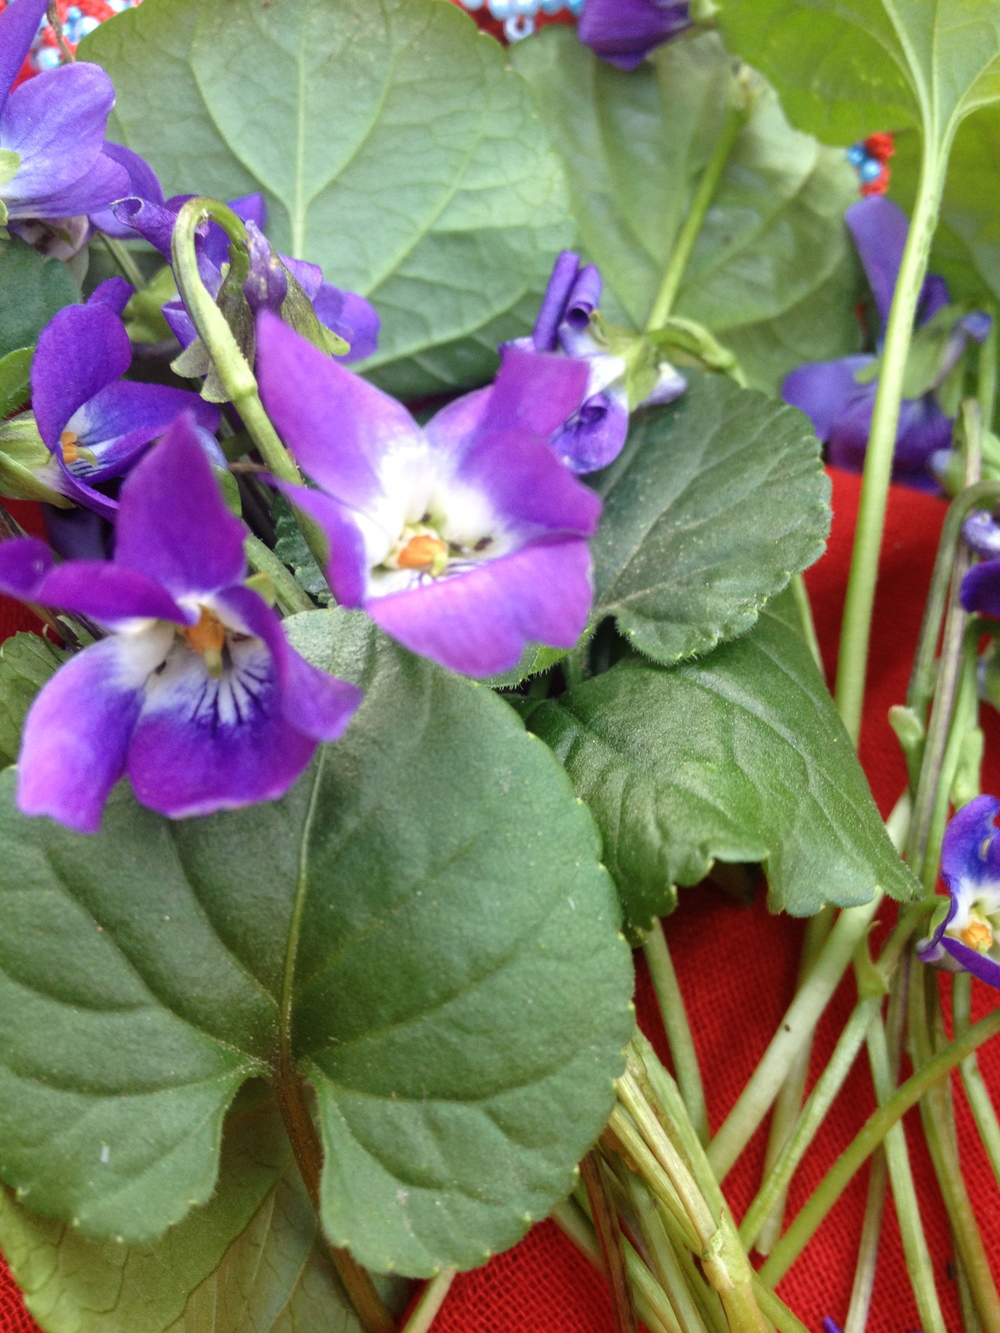 Vibrant Sweet Violet's harvested for medicine making.